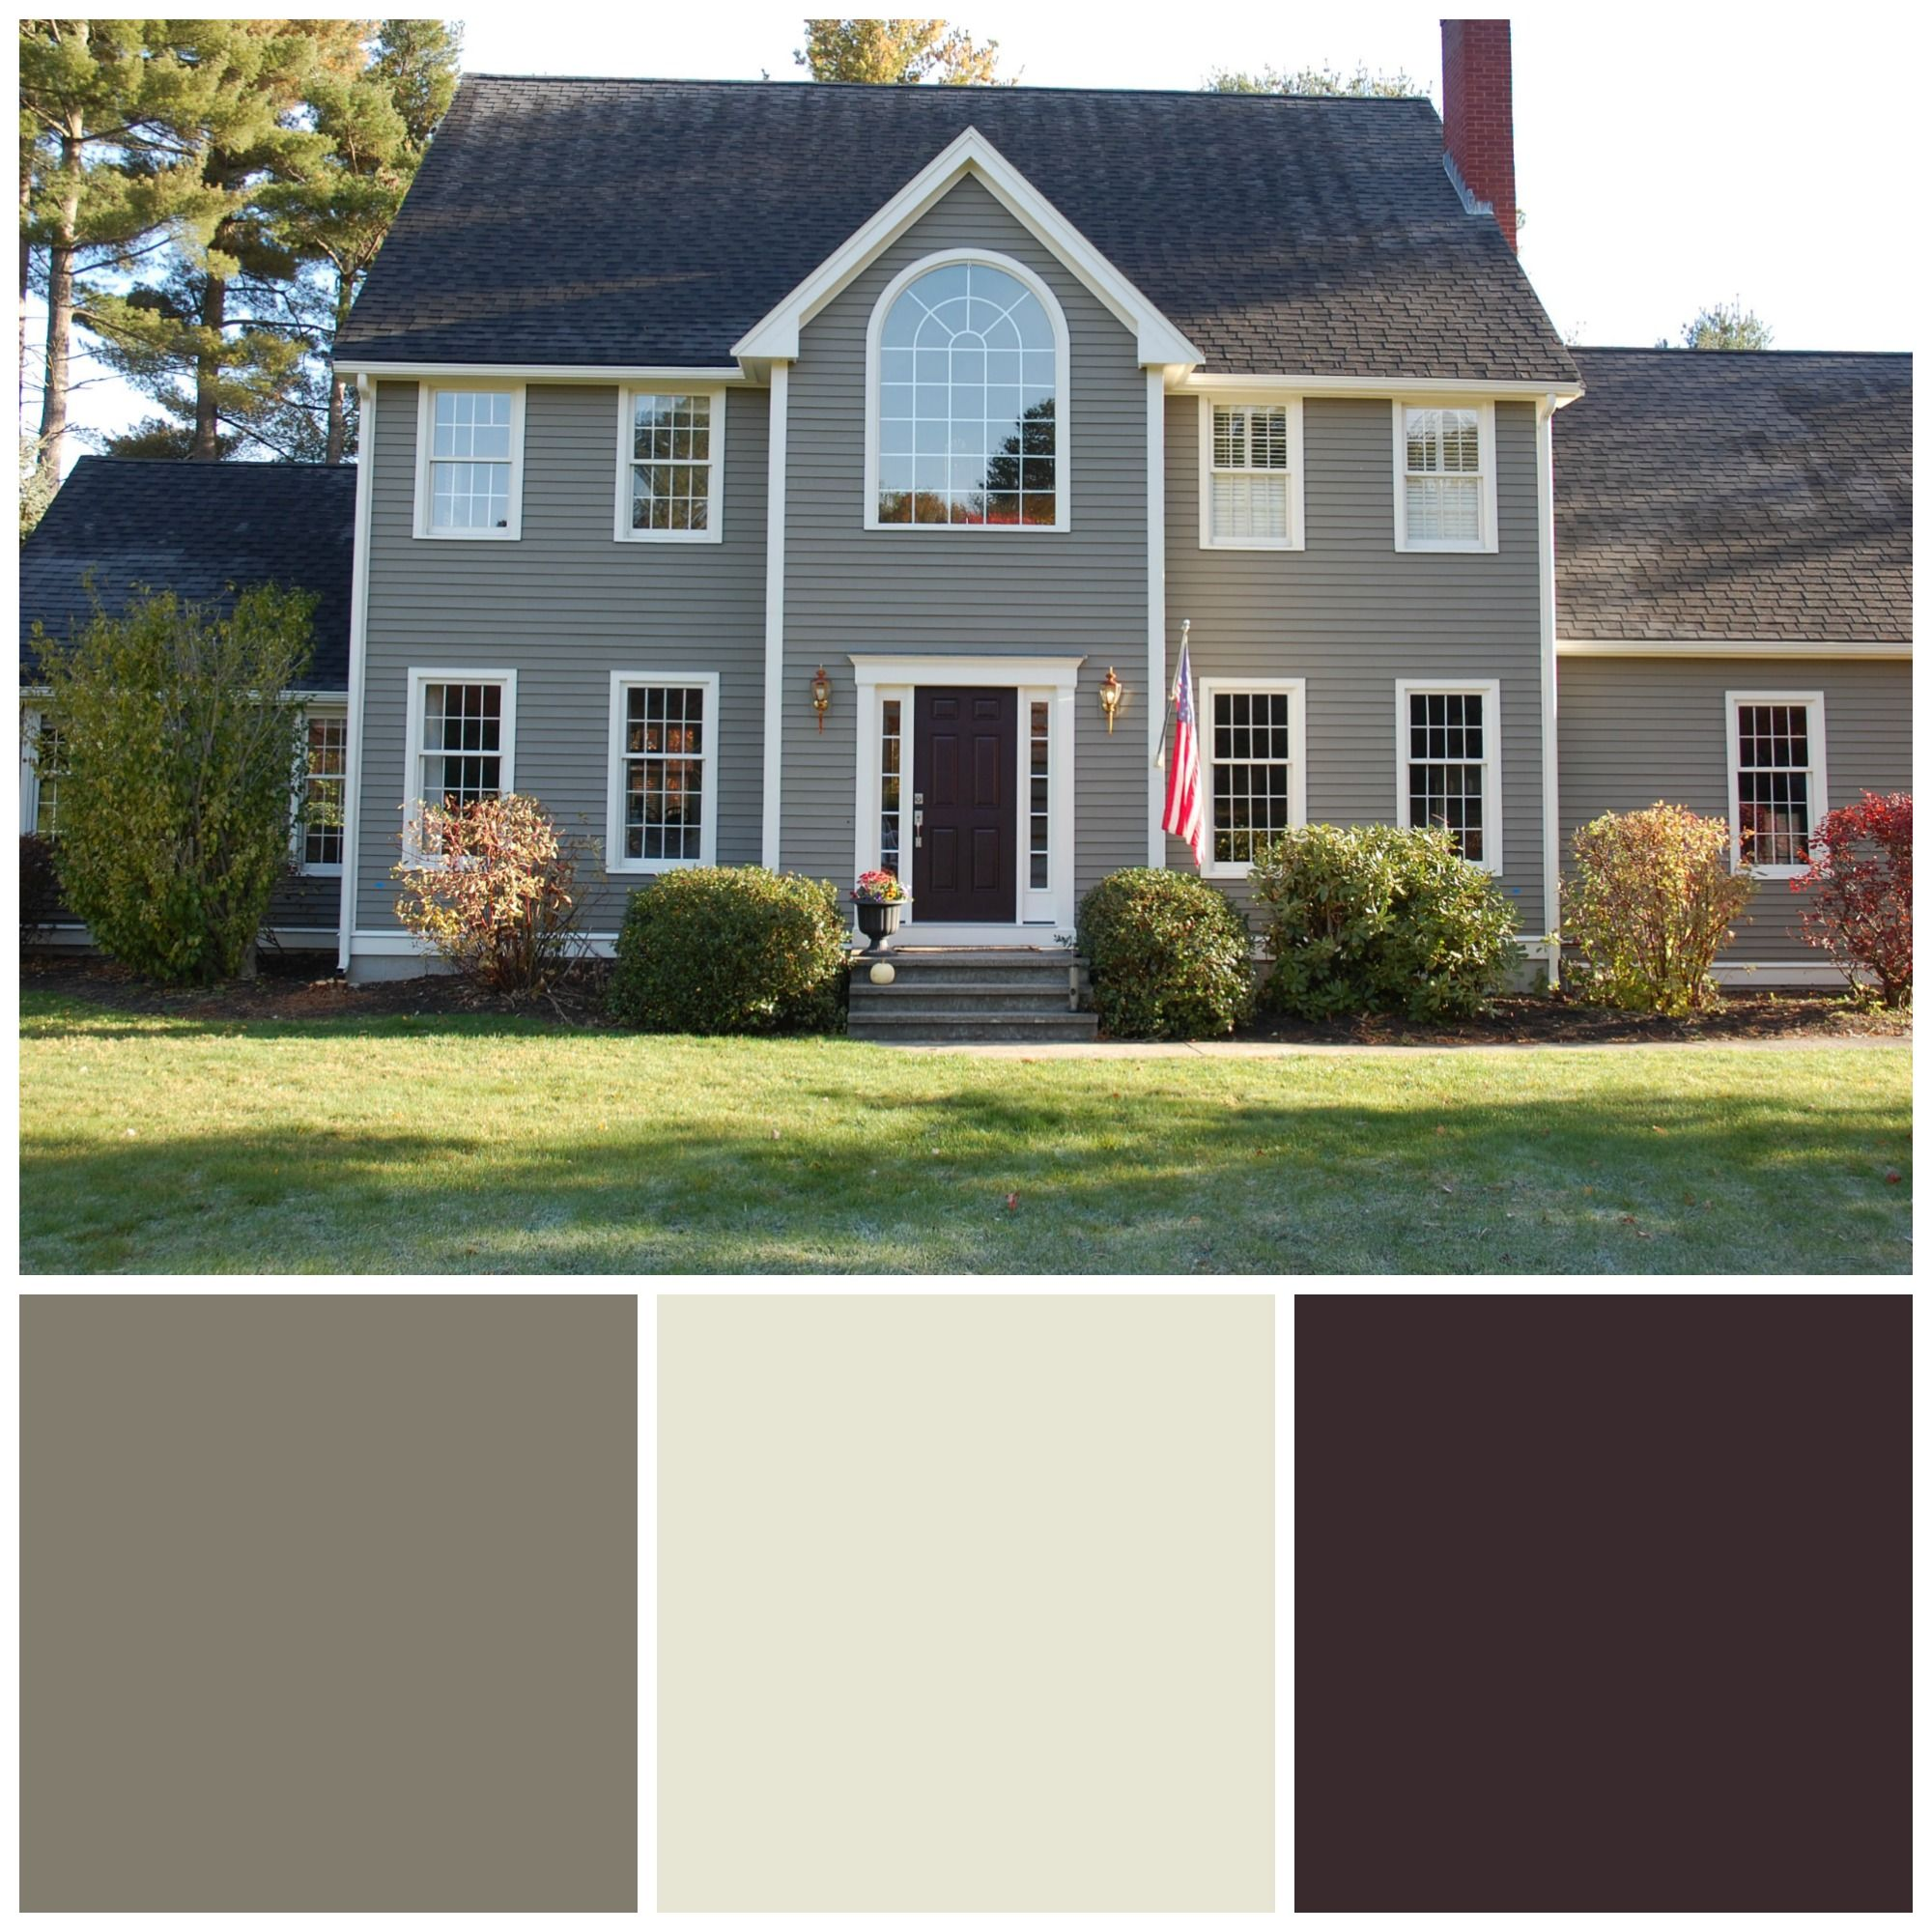 Sherwin Williams Exterior House Paint Colors Main Color Anonymous Trim Nacre Door Raisin